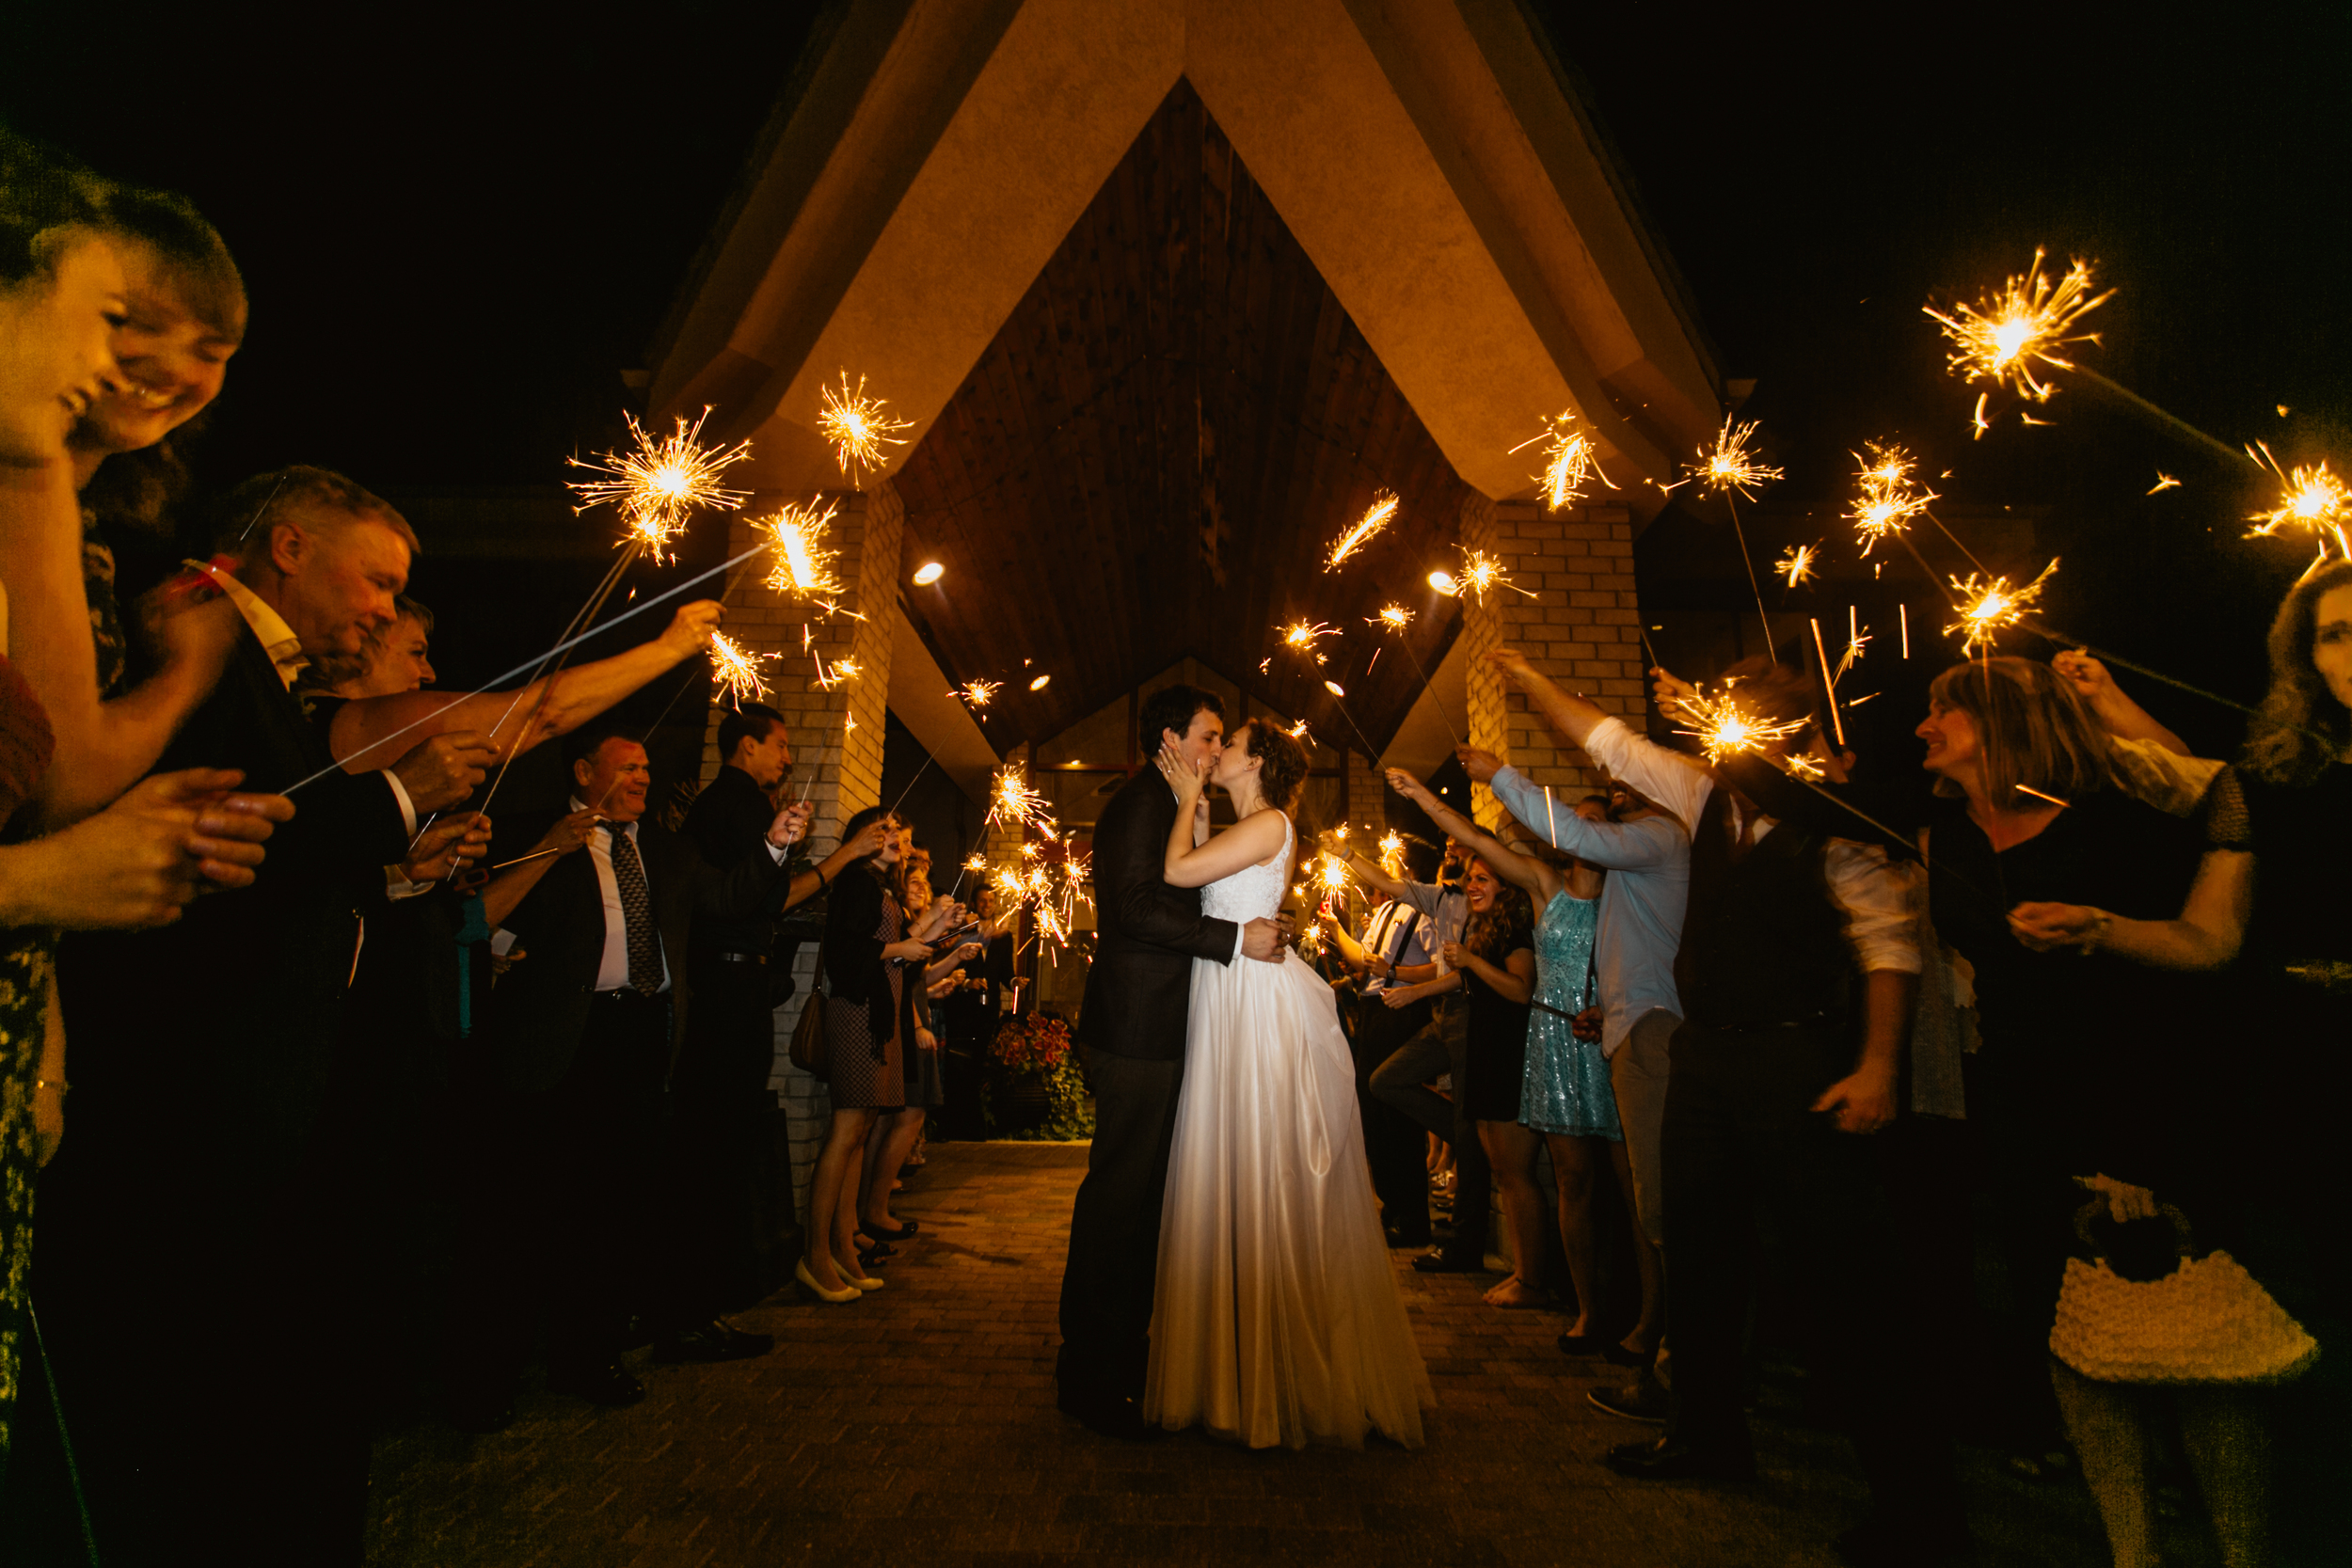 Cara & Gavin used sparklers for their send off. Another very inexpensive way to use lighting to your special event!